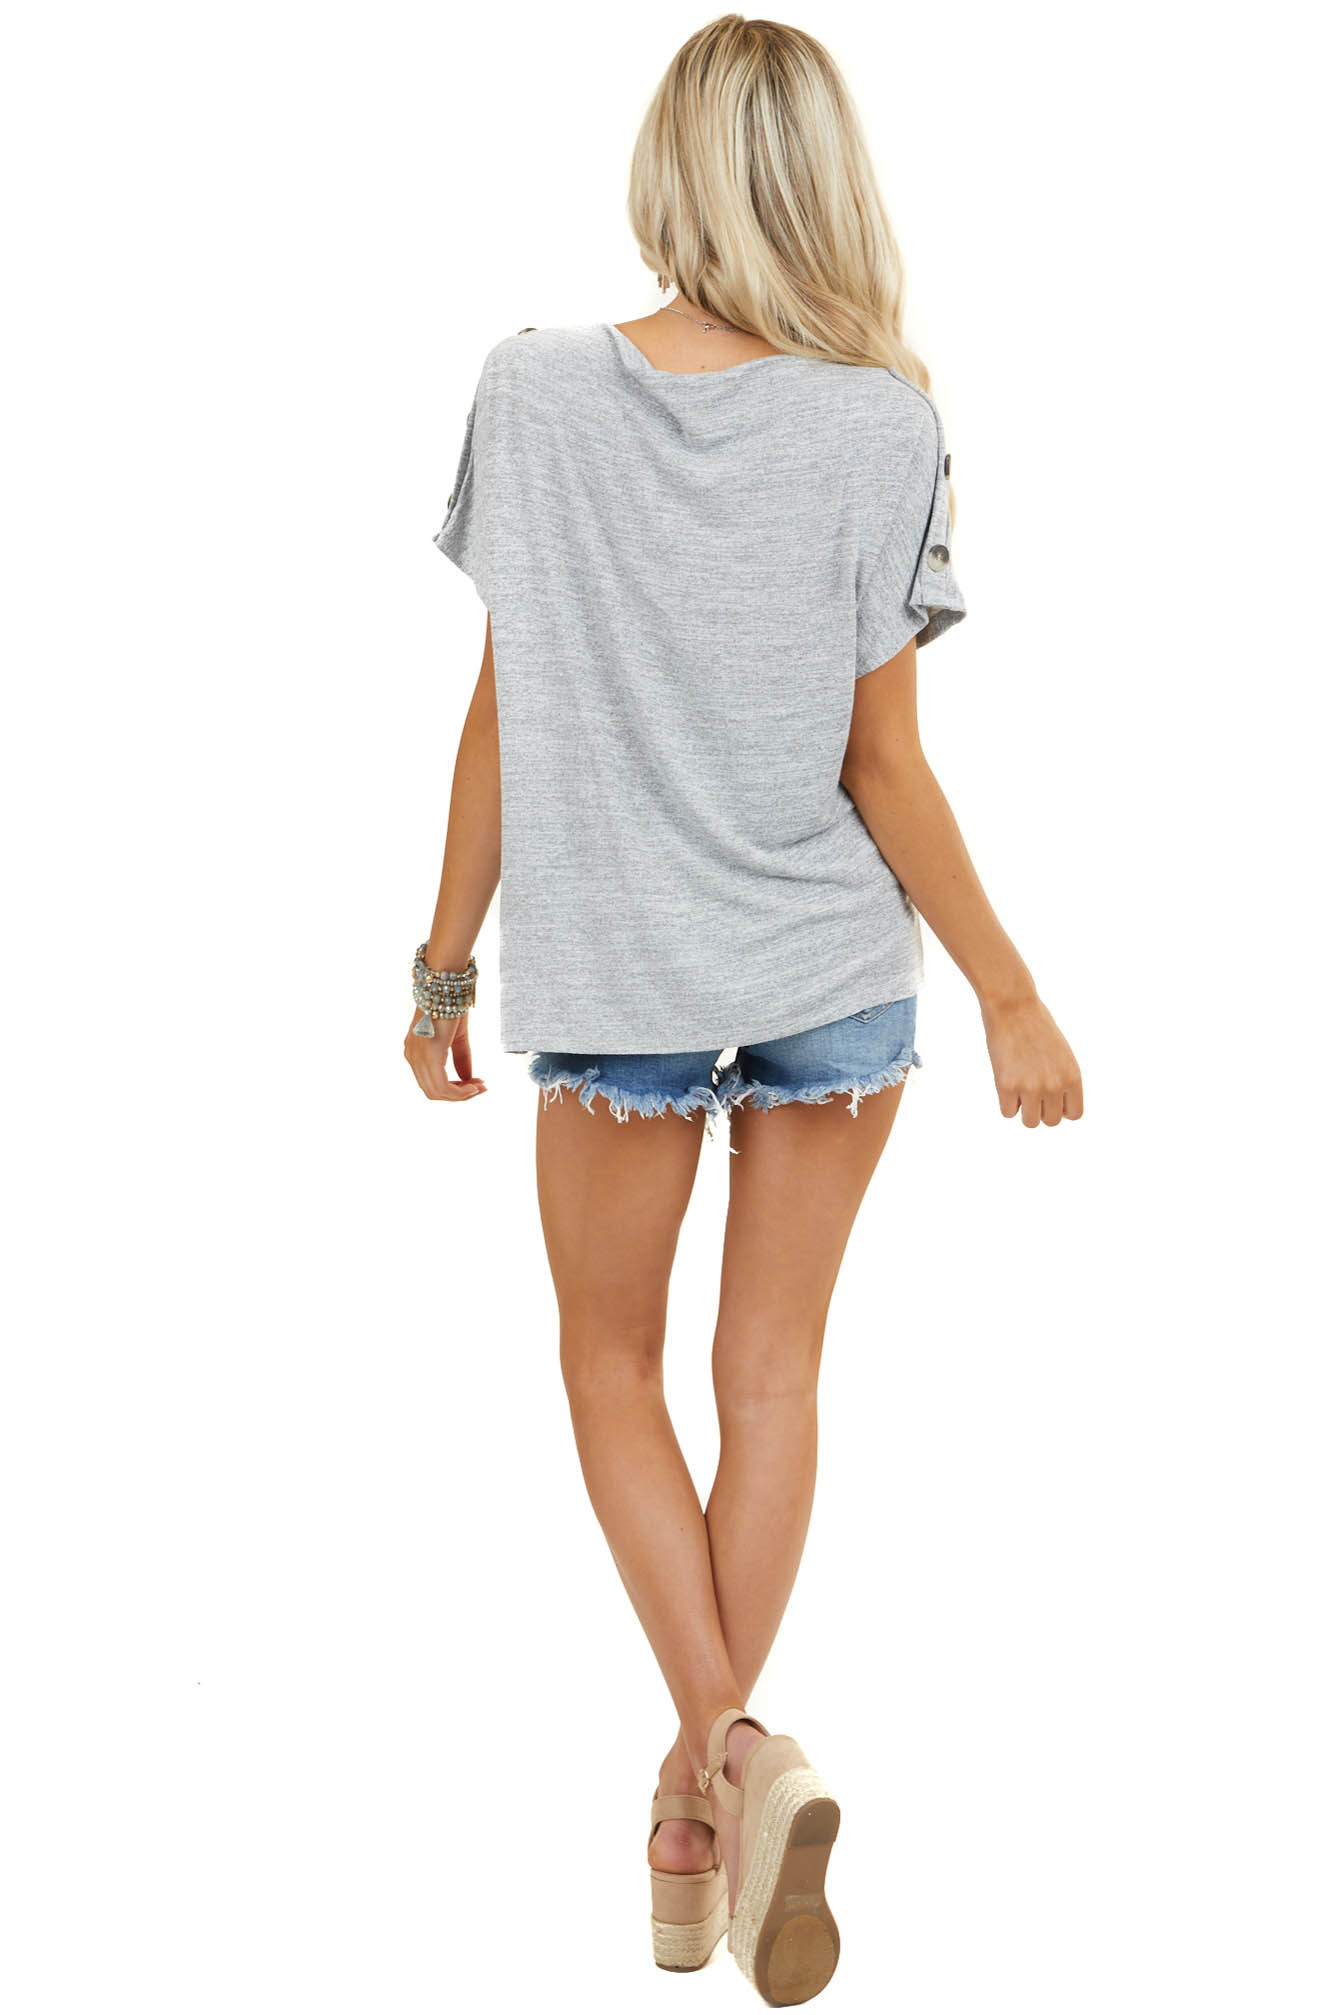 Grey Heathered Boat Neck Top with Button Details